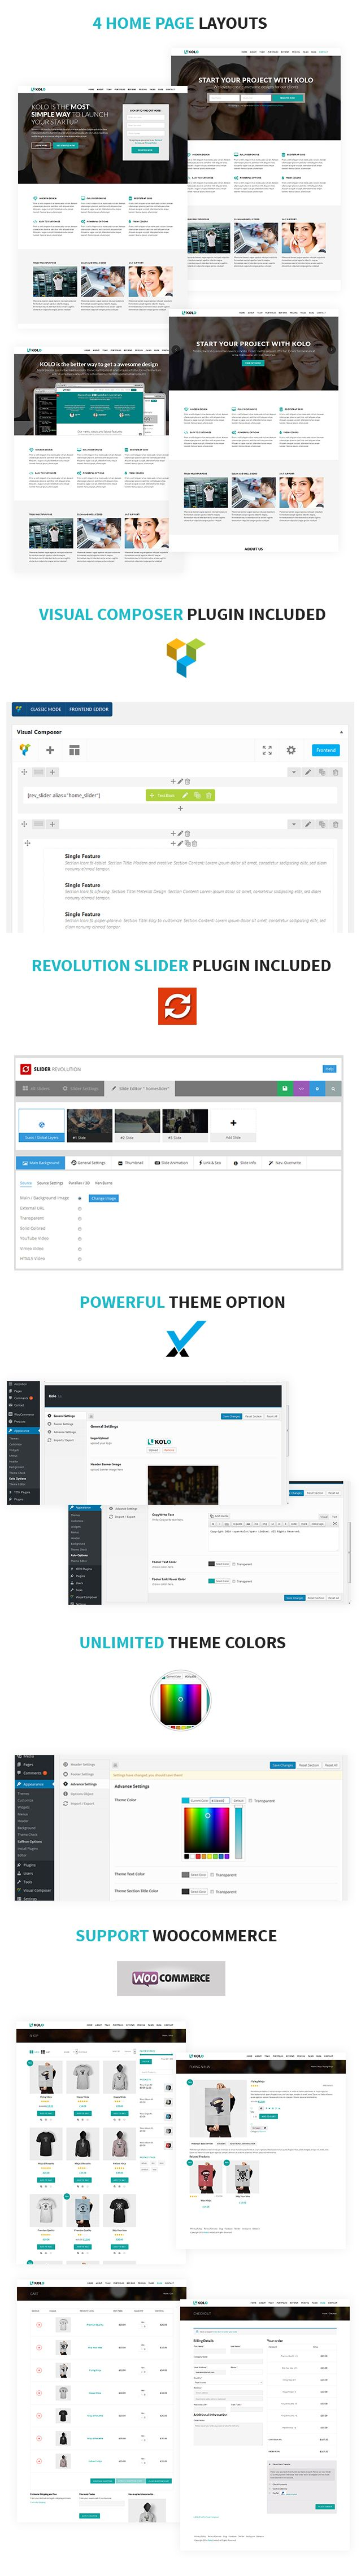 Best Seller WordPress Themes - Build Your Amazing Site Today! Premium WordPress Themes · Build Your Awesome Site Today Free support · Future updates · Quality checked · Get it now and save up to $23  #wordpress #wp #wordpress theme #wordpress themes #wordpress template #wordpress templates #wp theme #wp themes #wp template #wp templates